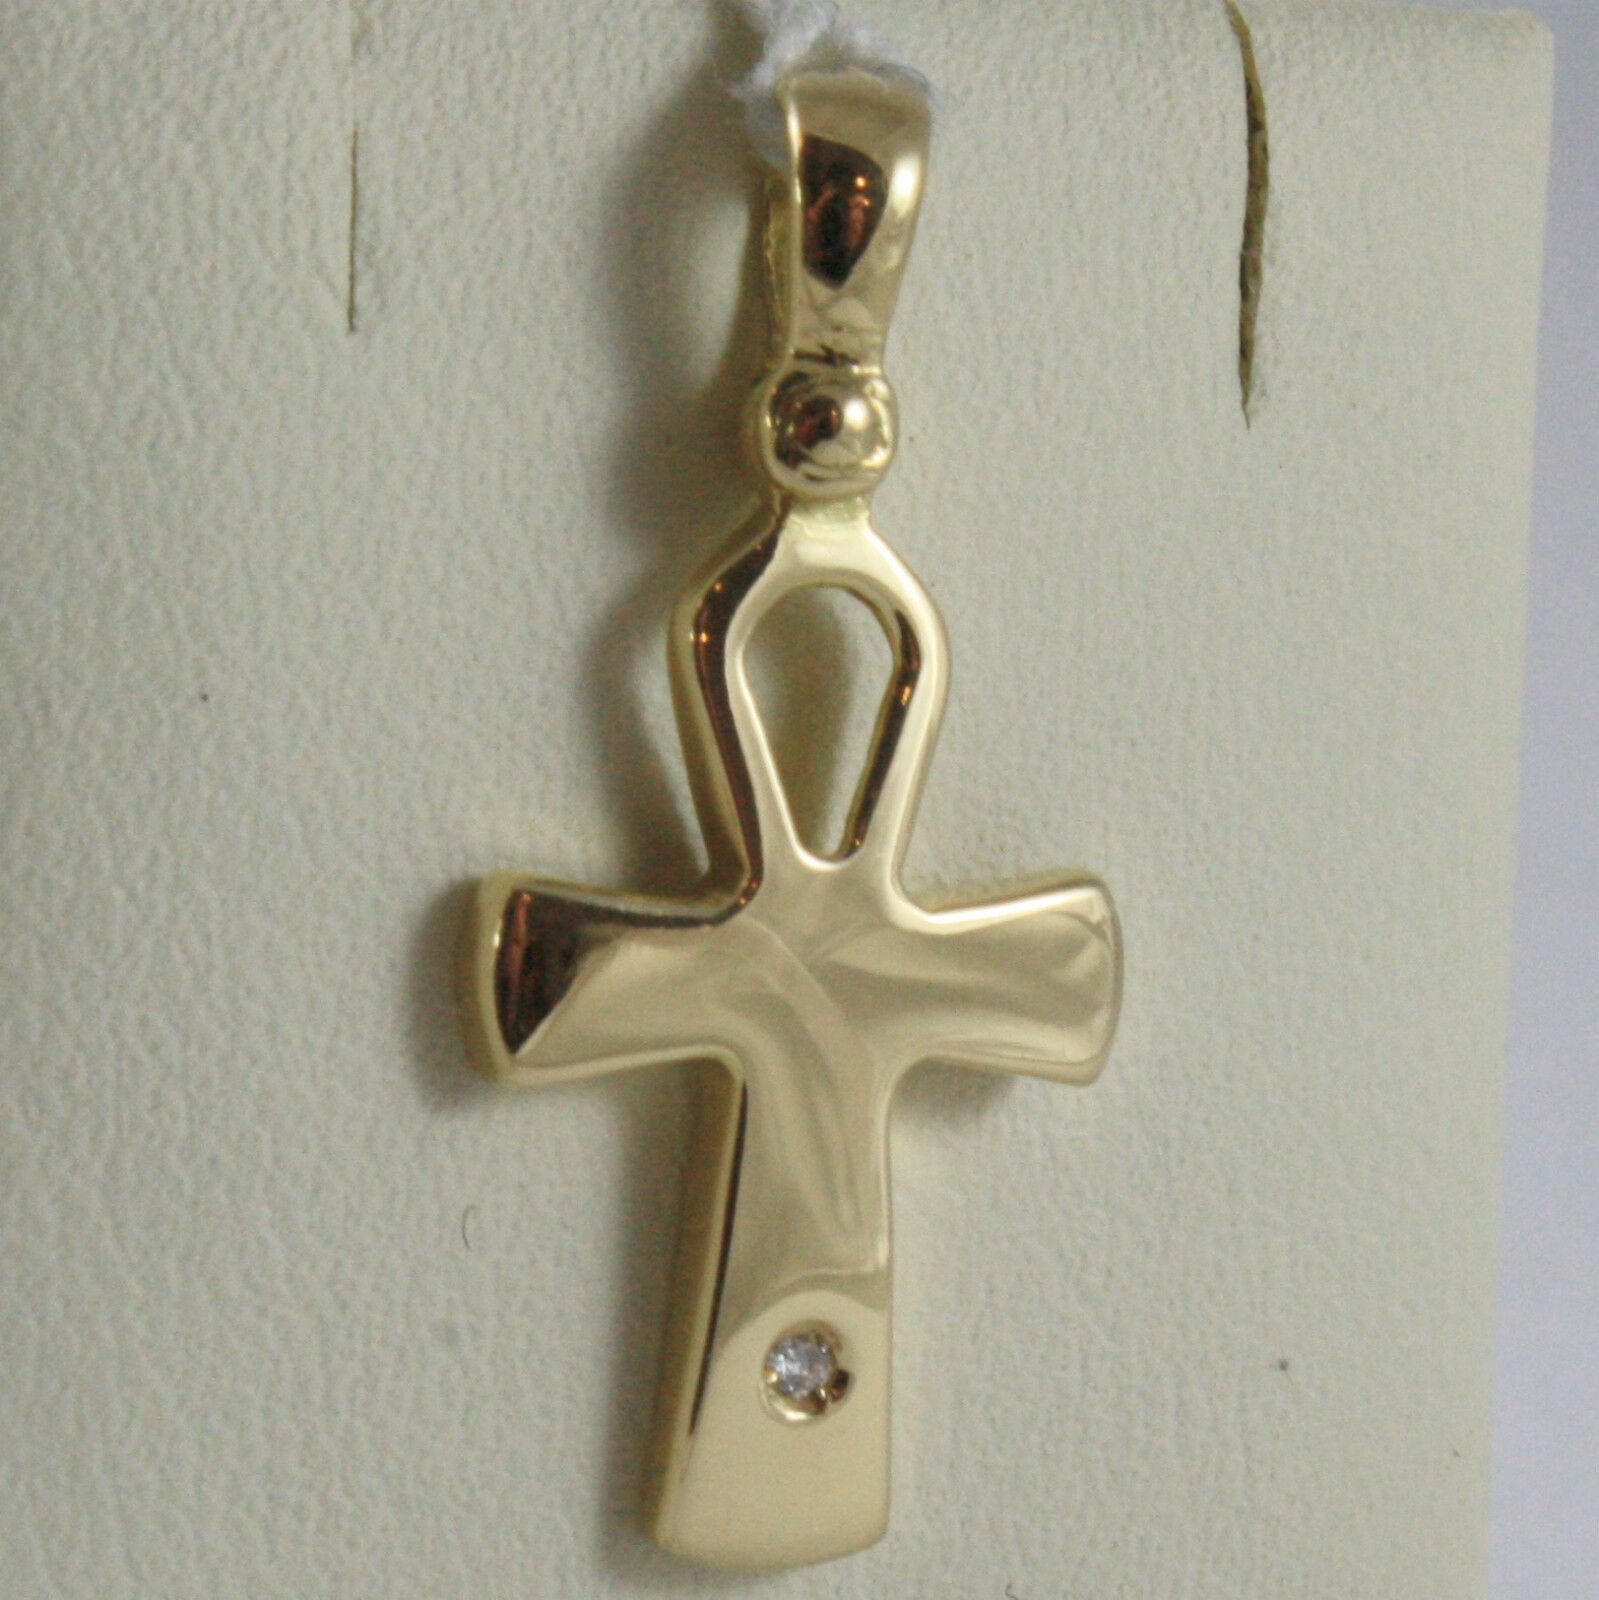 SOLID 18K YELLOW GOLD CROSS, CROSS OF LIFE, ANKH, DIAMOND, 1.02 IN MADE IN ITALY